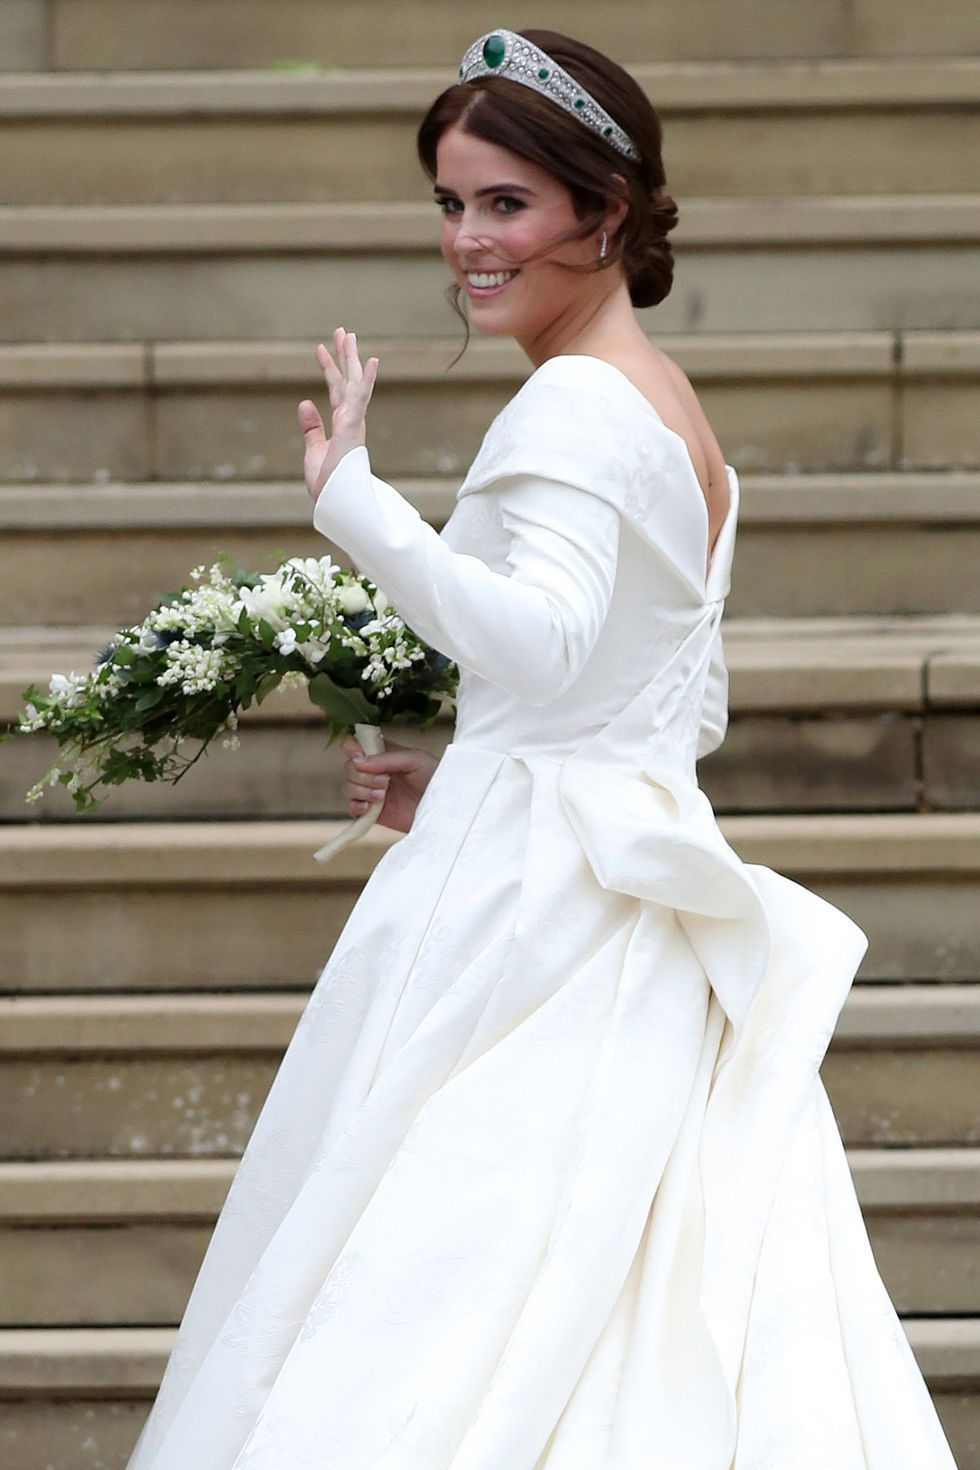 Here S Your Cheat Sheet To Princess Eugenie S Royal Wedding Royal Wedding Gowns Royal Wedding Dress Eugenie Wedding [ jpg ]